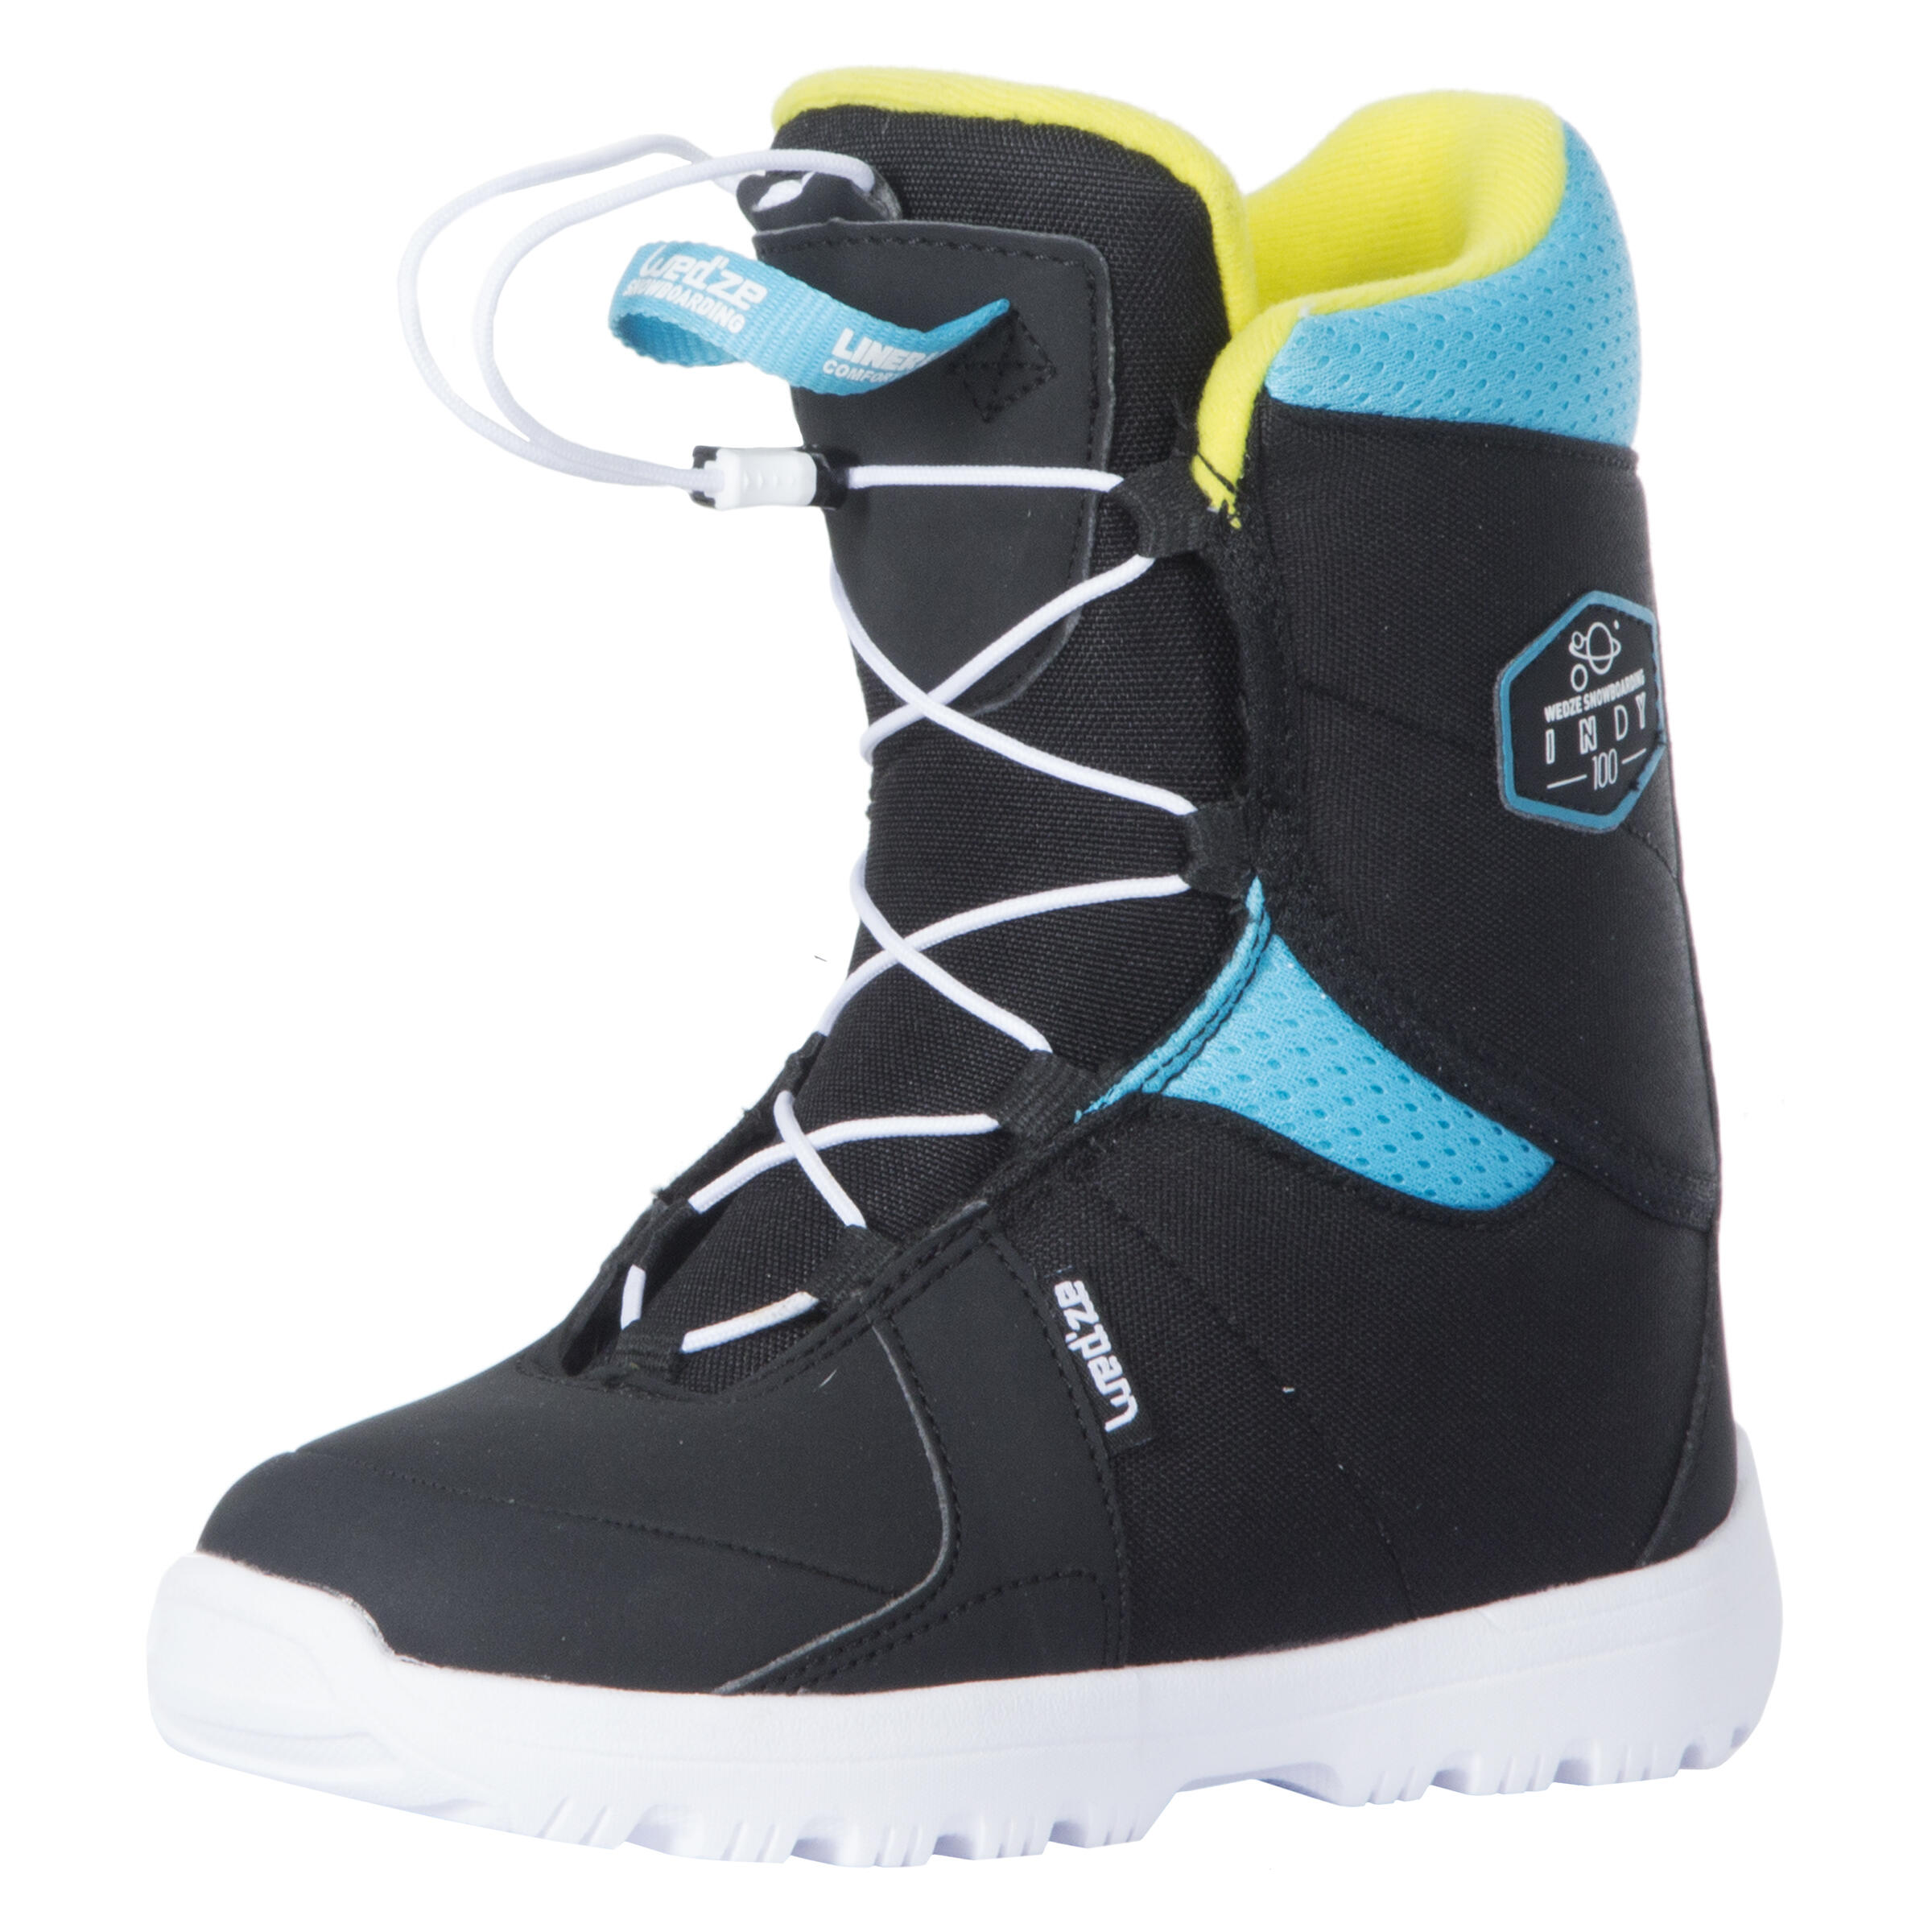 Boots snowboard Indy 100 imagine